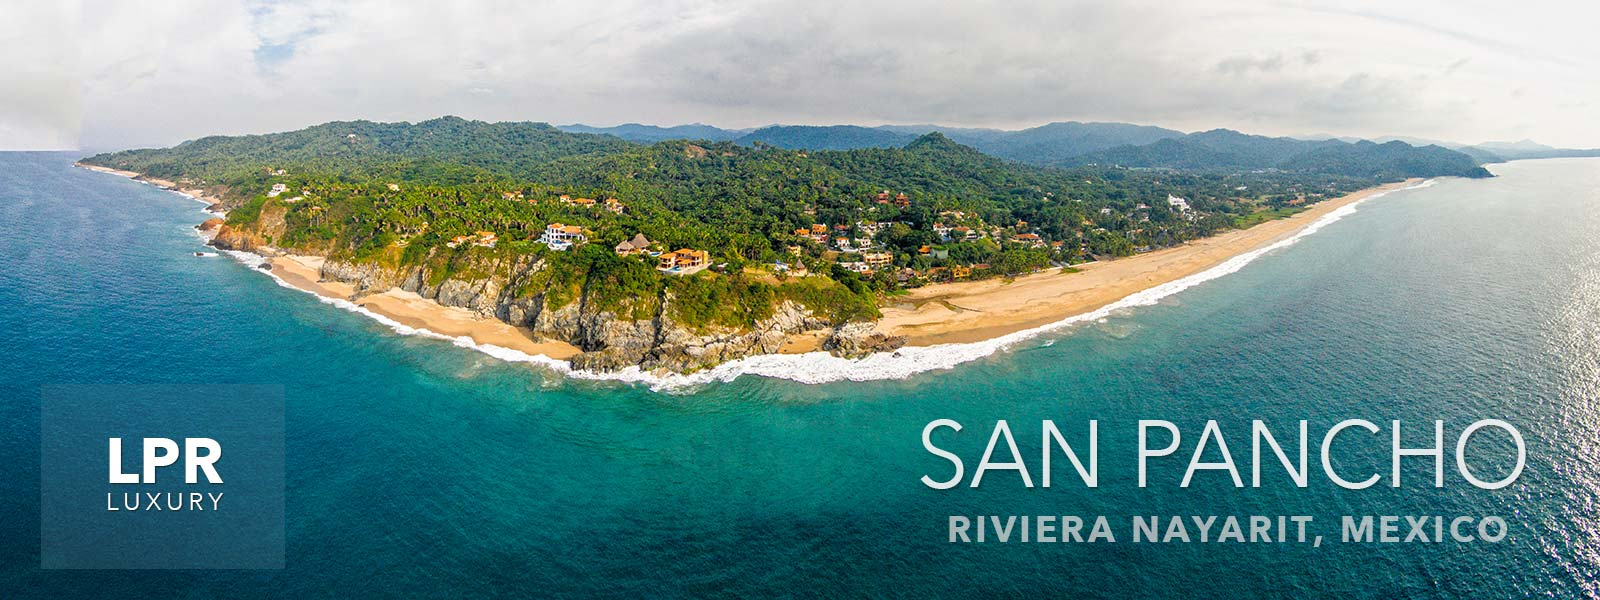 San Pancho - Luxury Real Estate and Vacation Rentals - Riviera Nayarit , Mexico